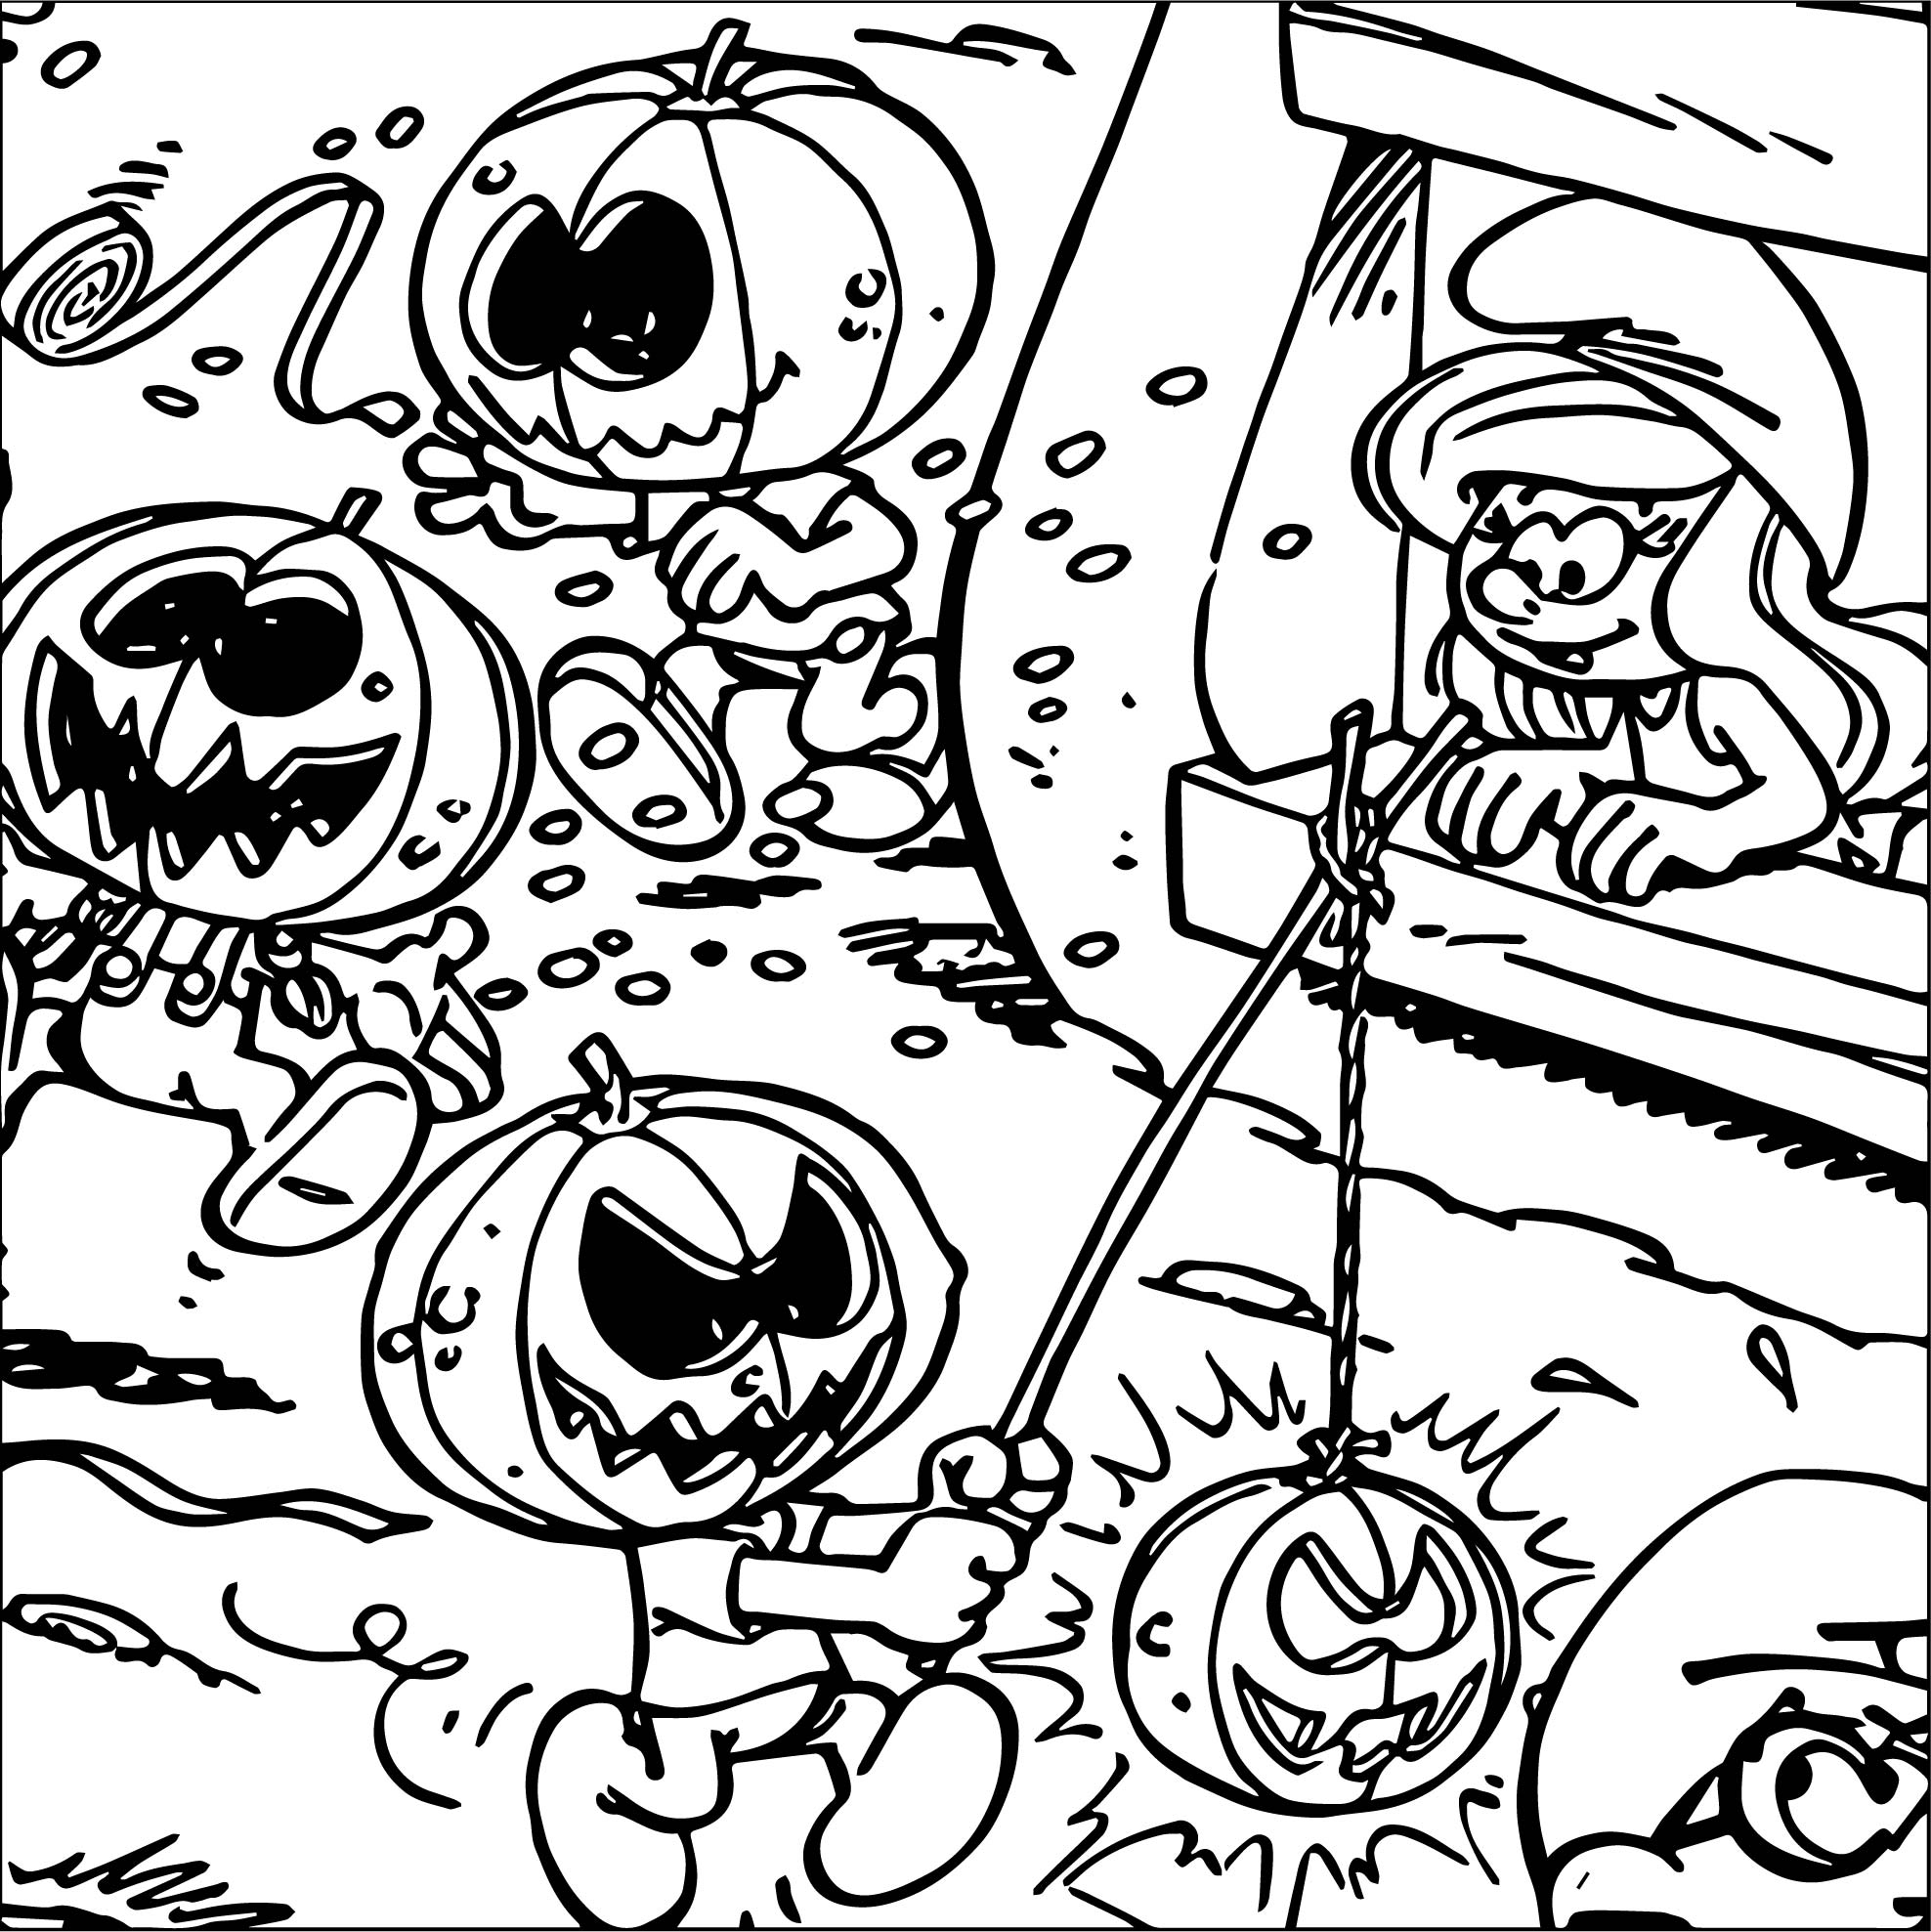 Smurfs Halloween Coloring Page